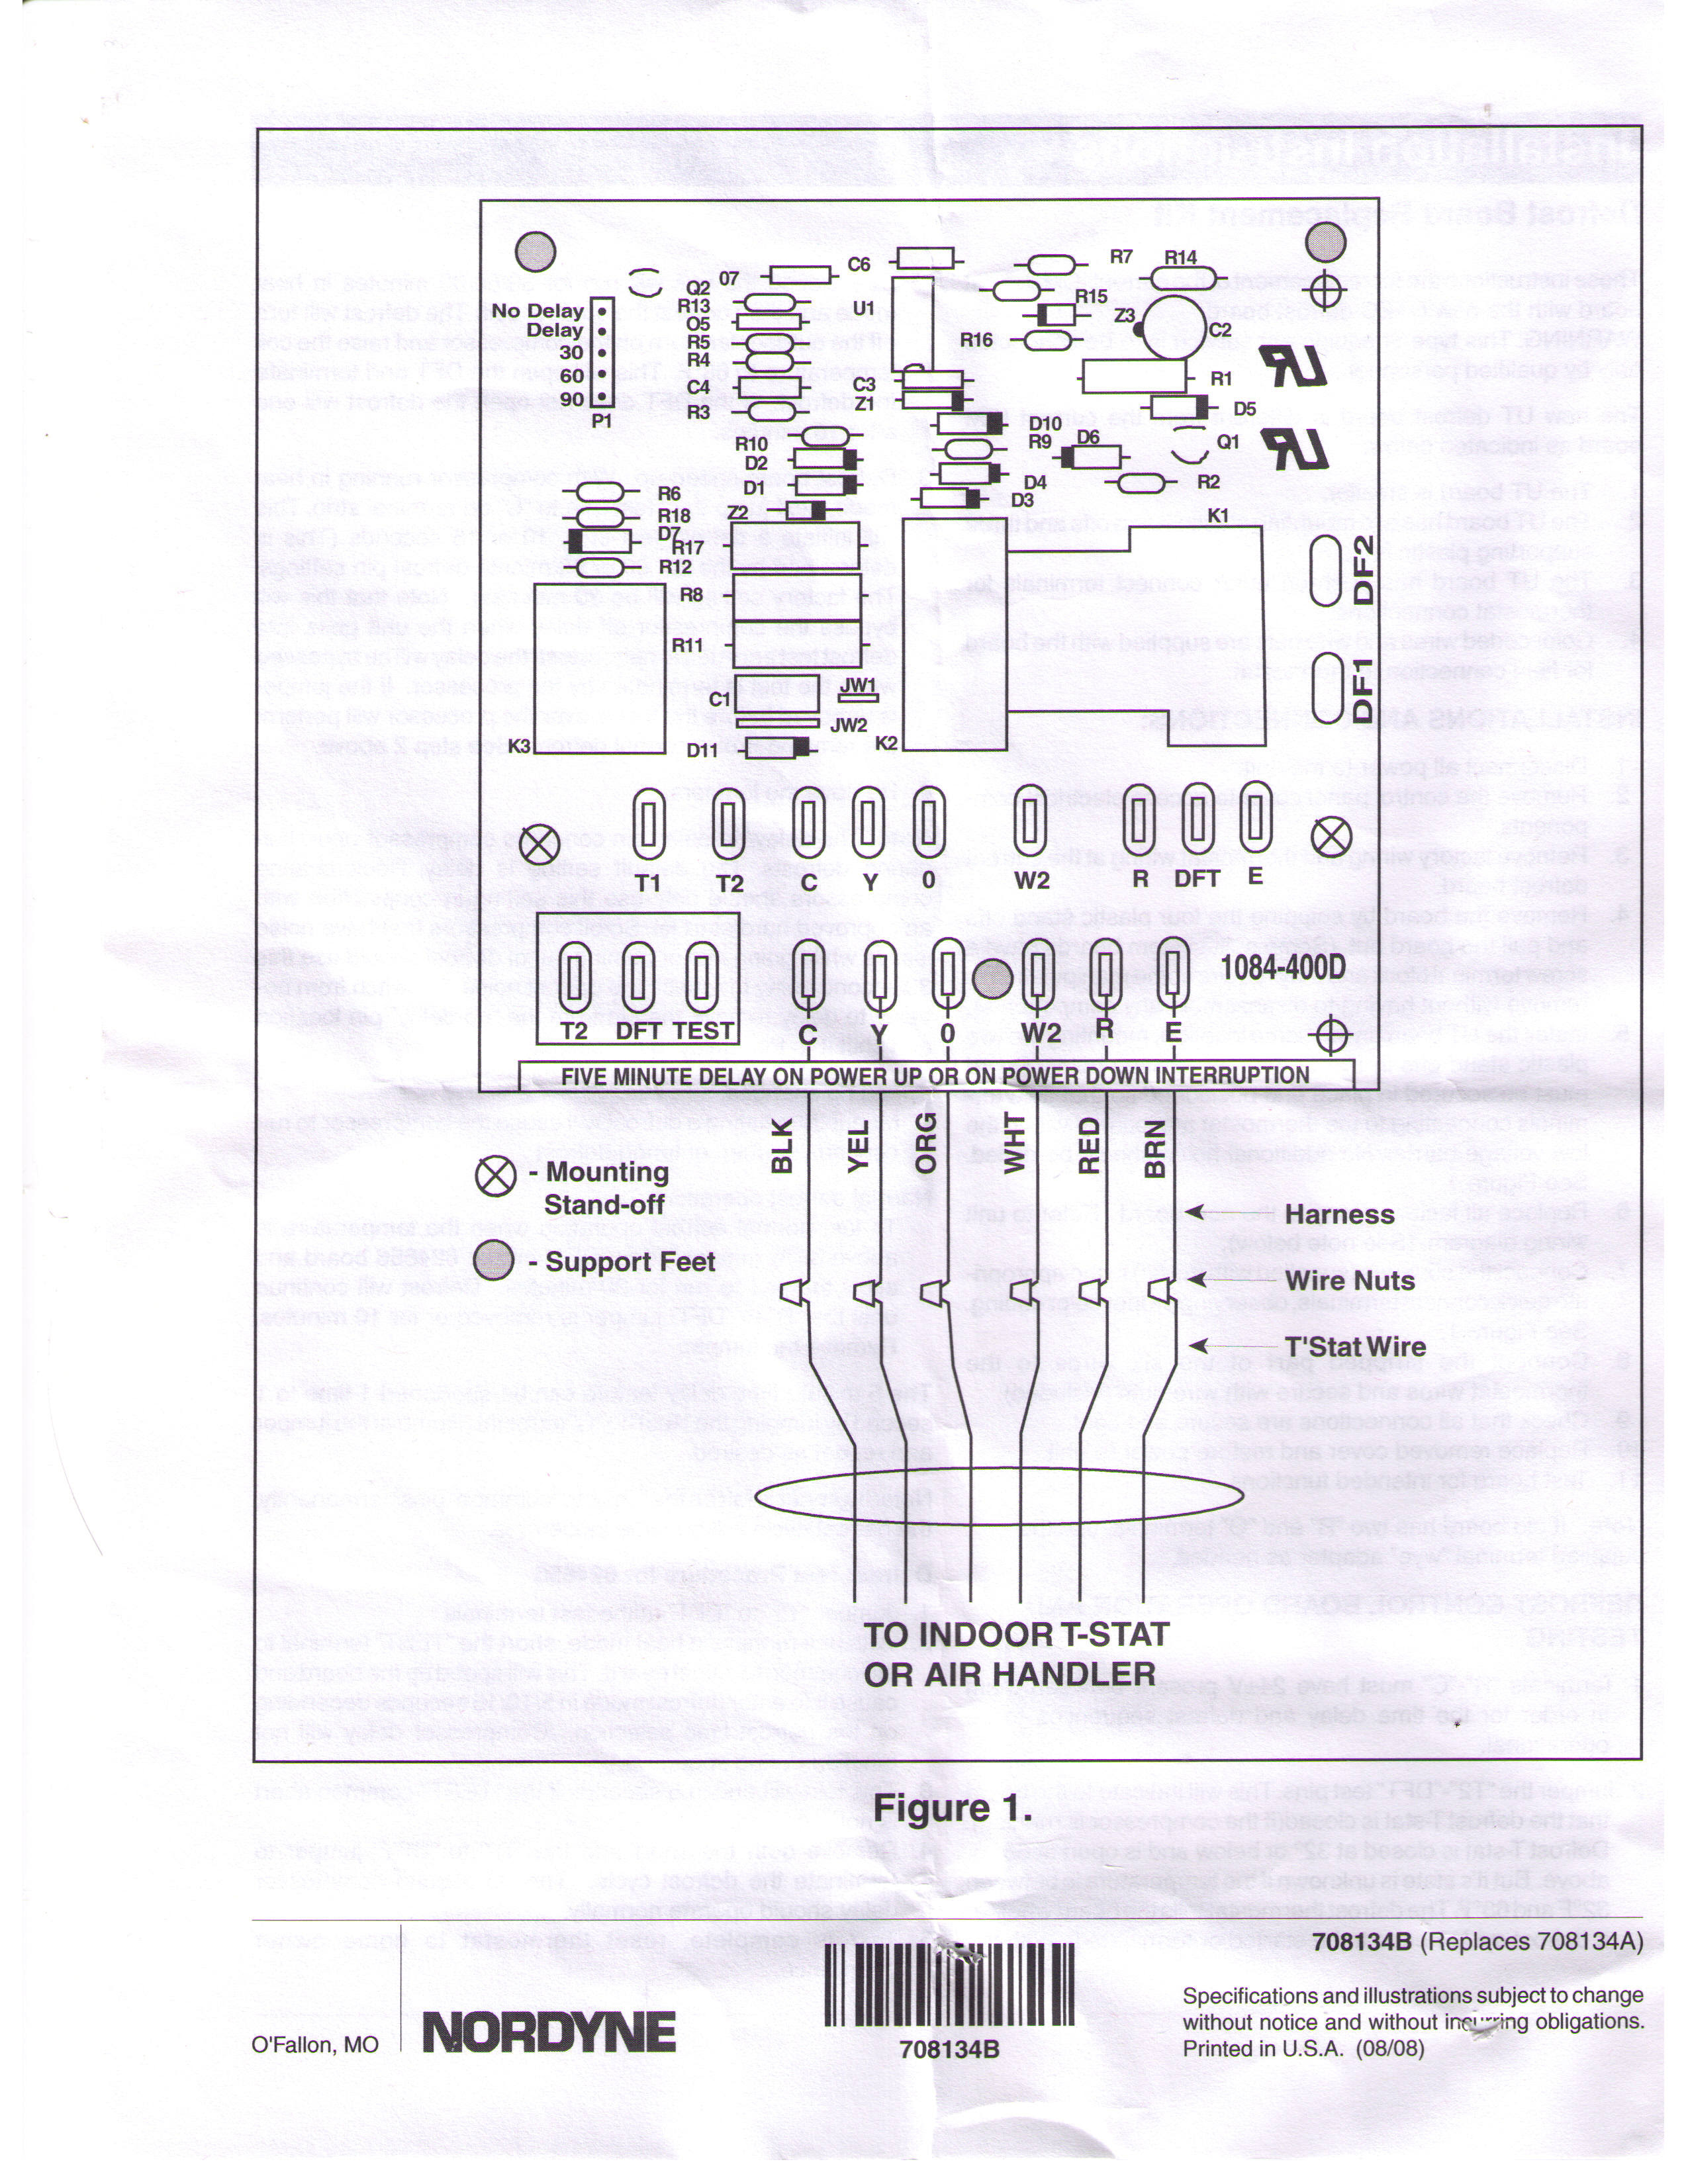 25 Awesome Nordyne Control Board Wiring Diagram on